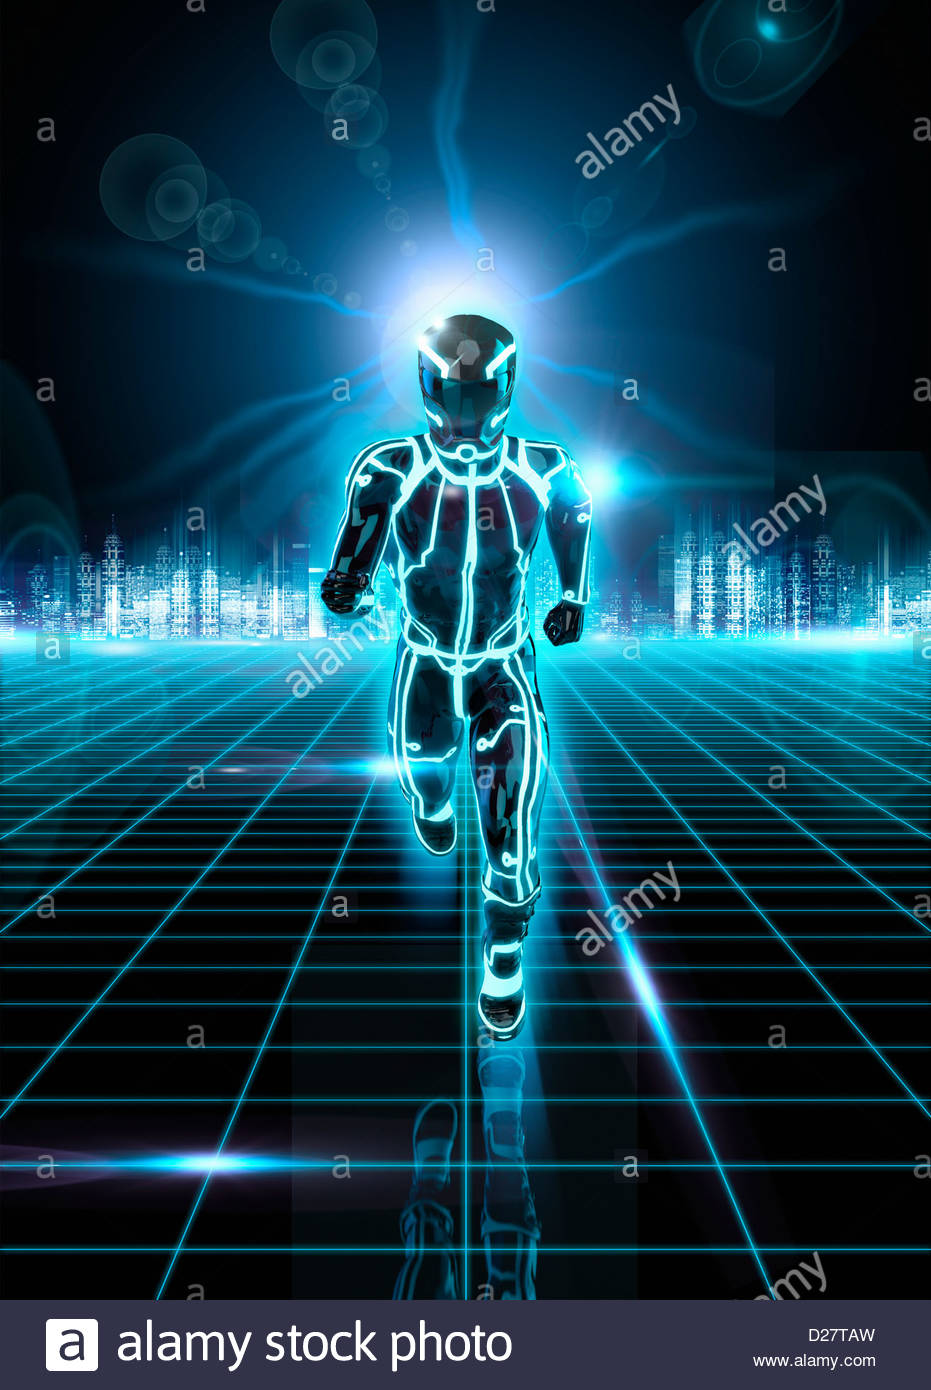 Glowing android running on grid from futuristic city - Stock Image